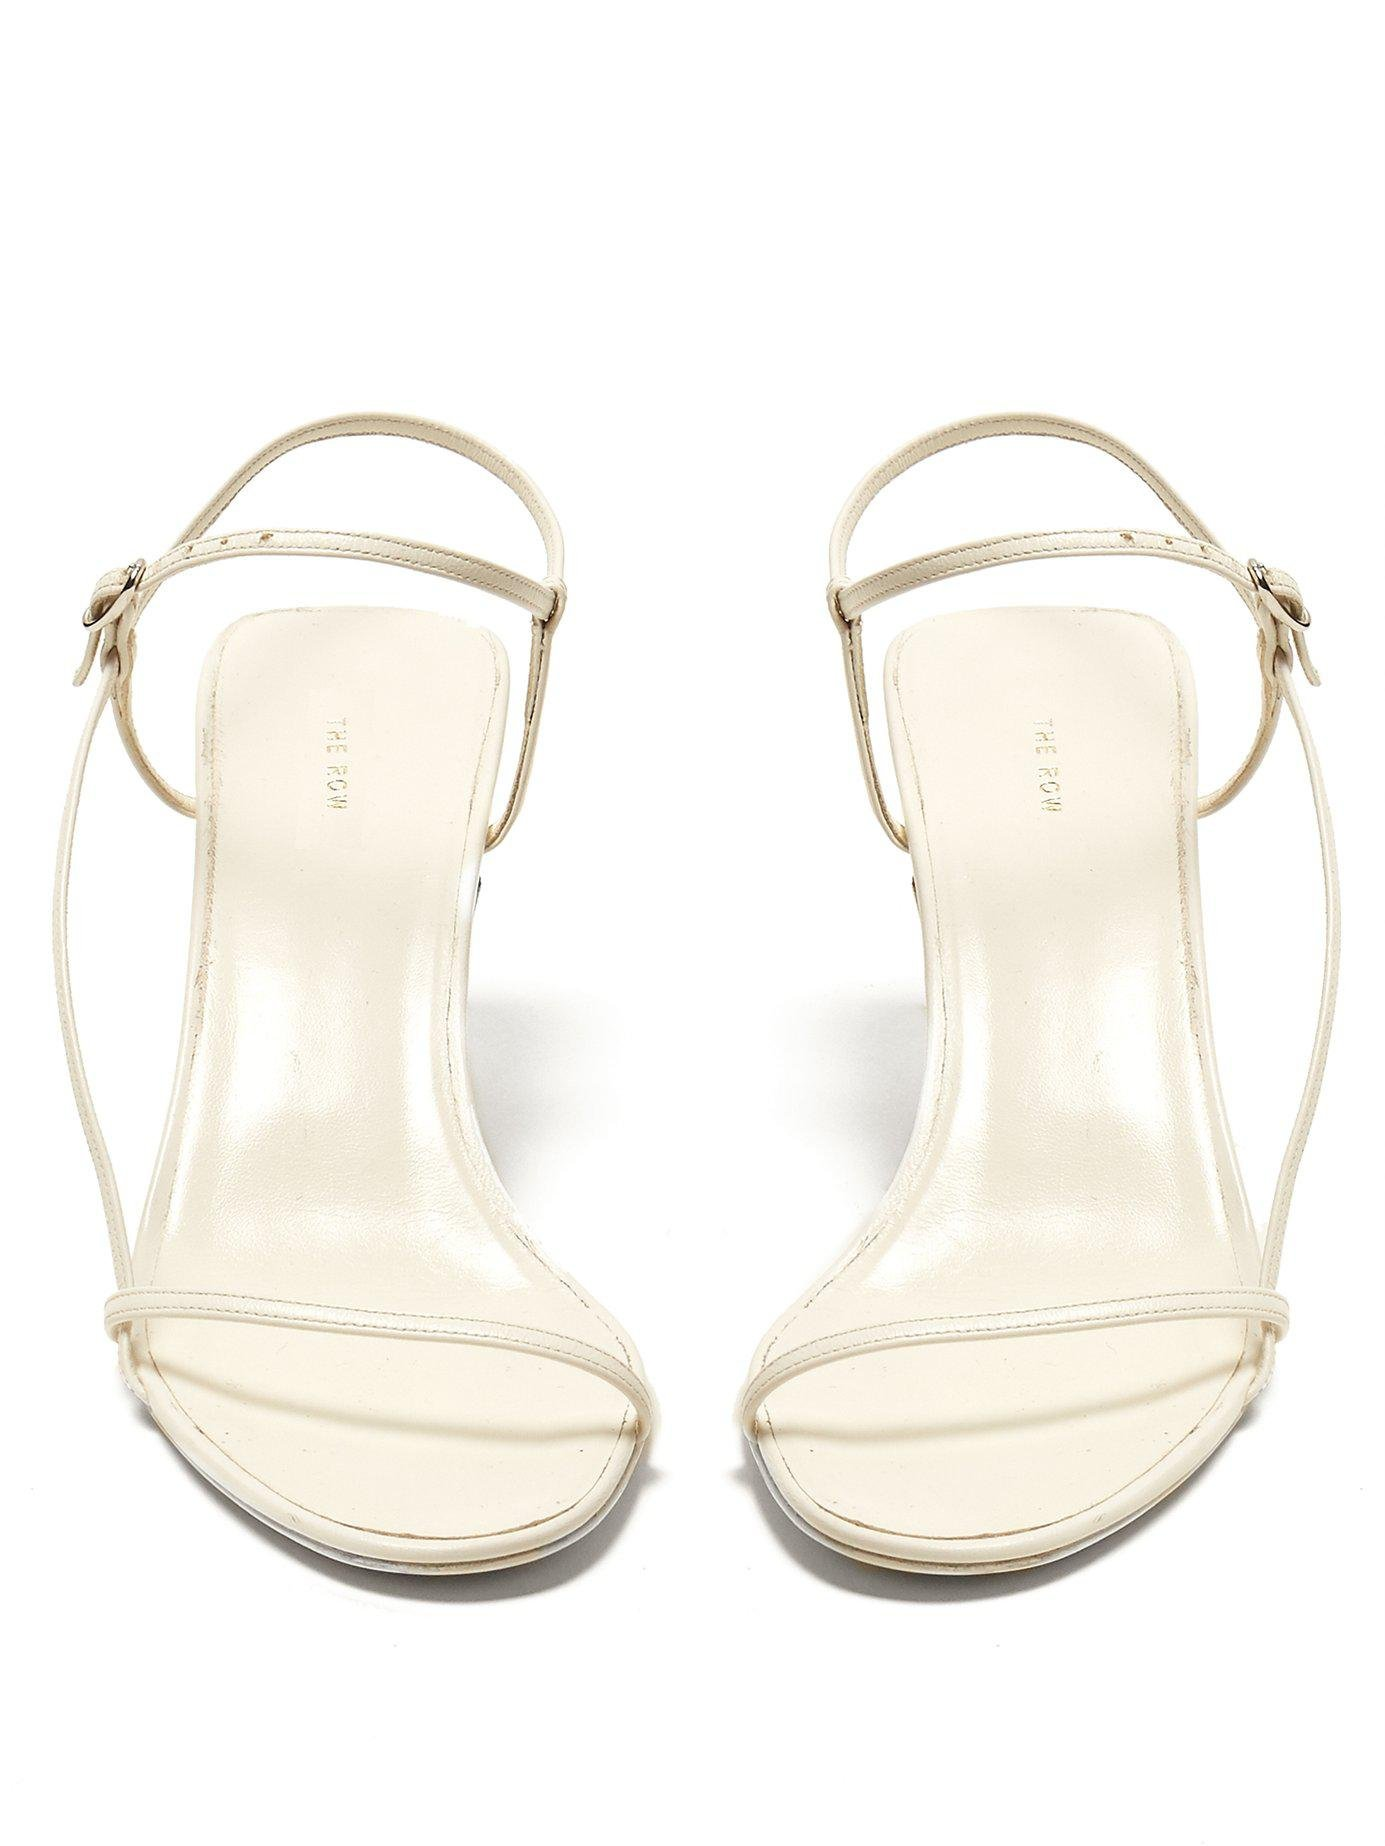 b6f658ed967 Lyst - The Row Mid Heel Slingback Sandals in White